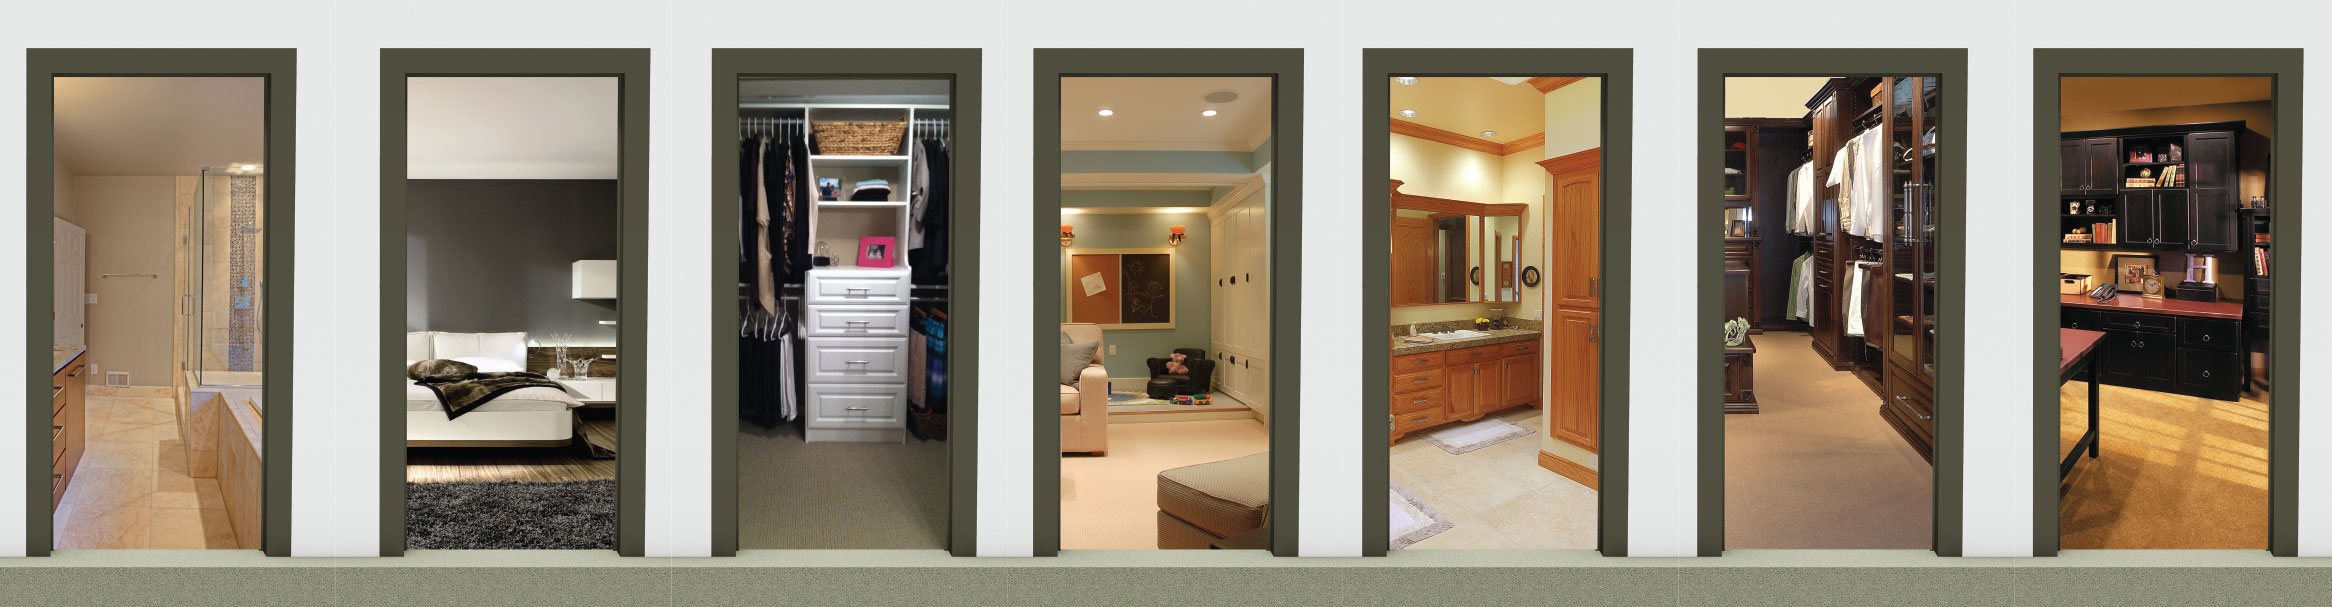 Basement Safe Room Designs